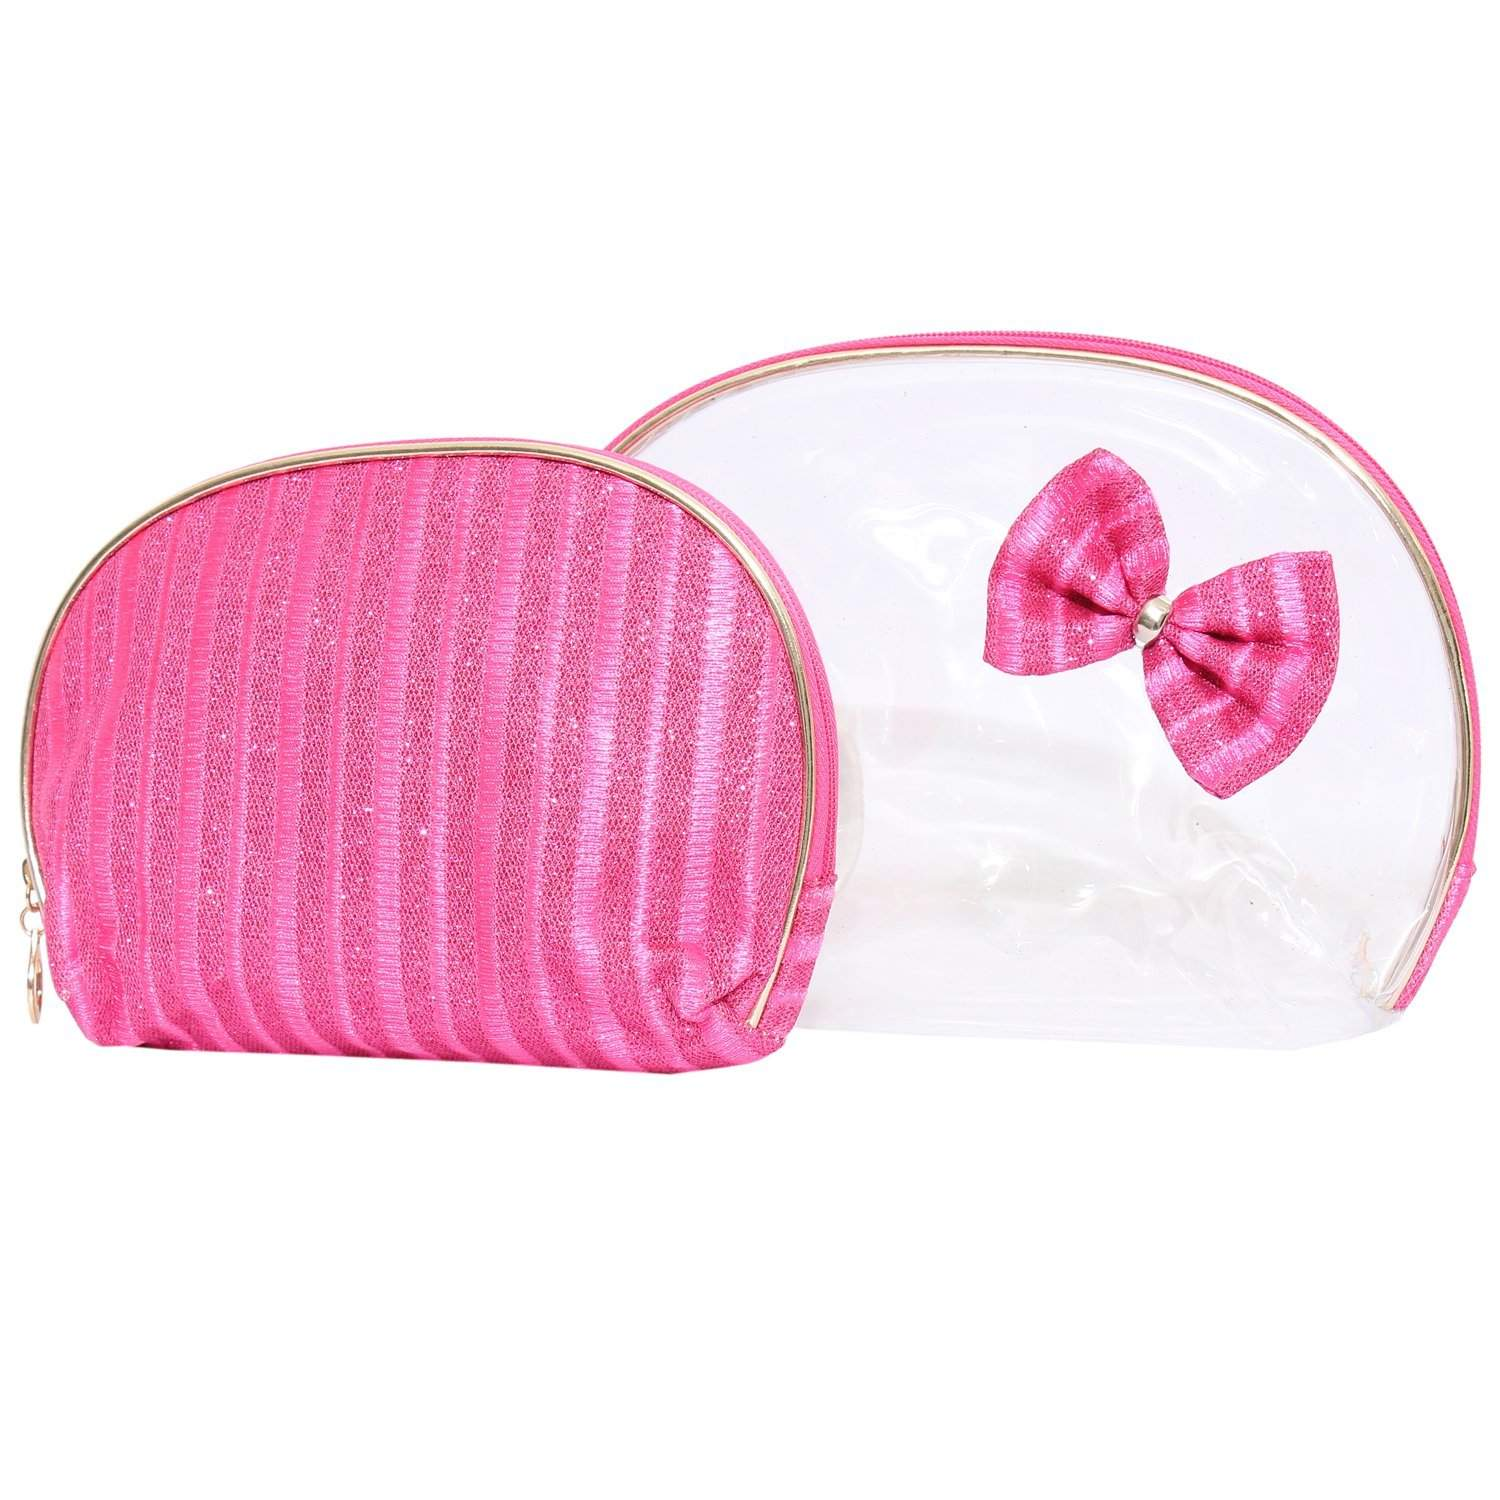 Multipurpose Pink Makeup pouch (Set of 2) - Bagaholics Gift